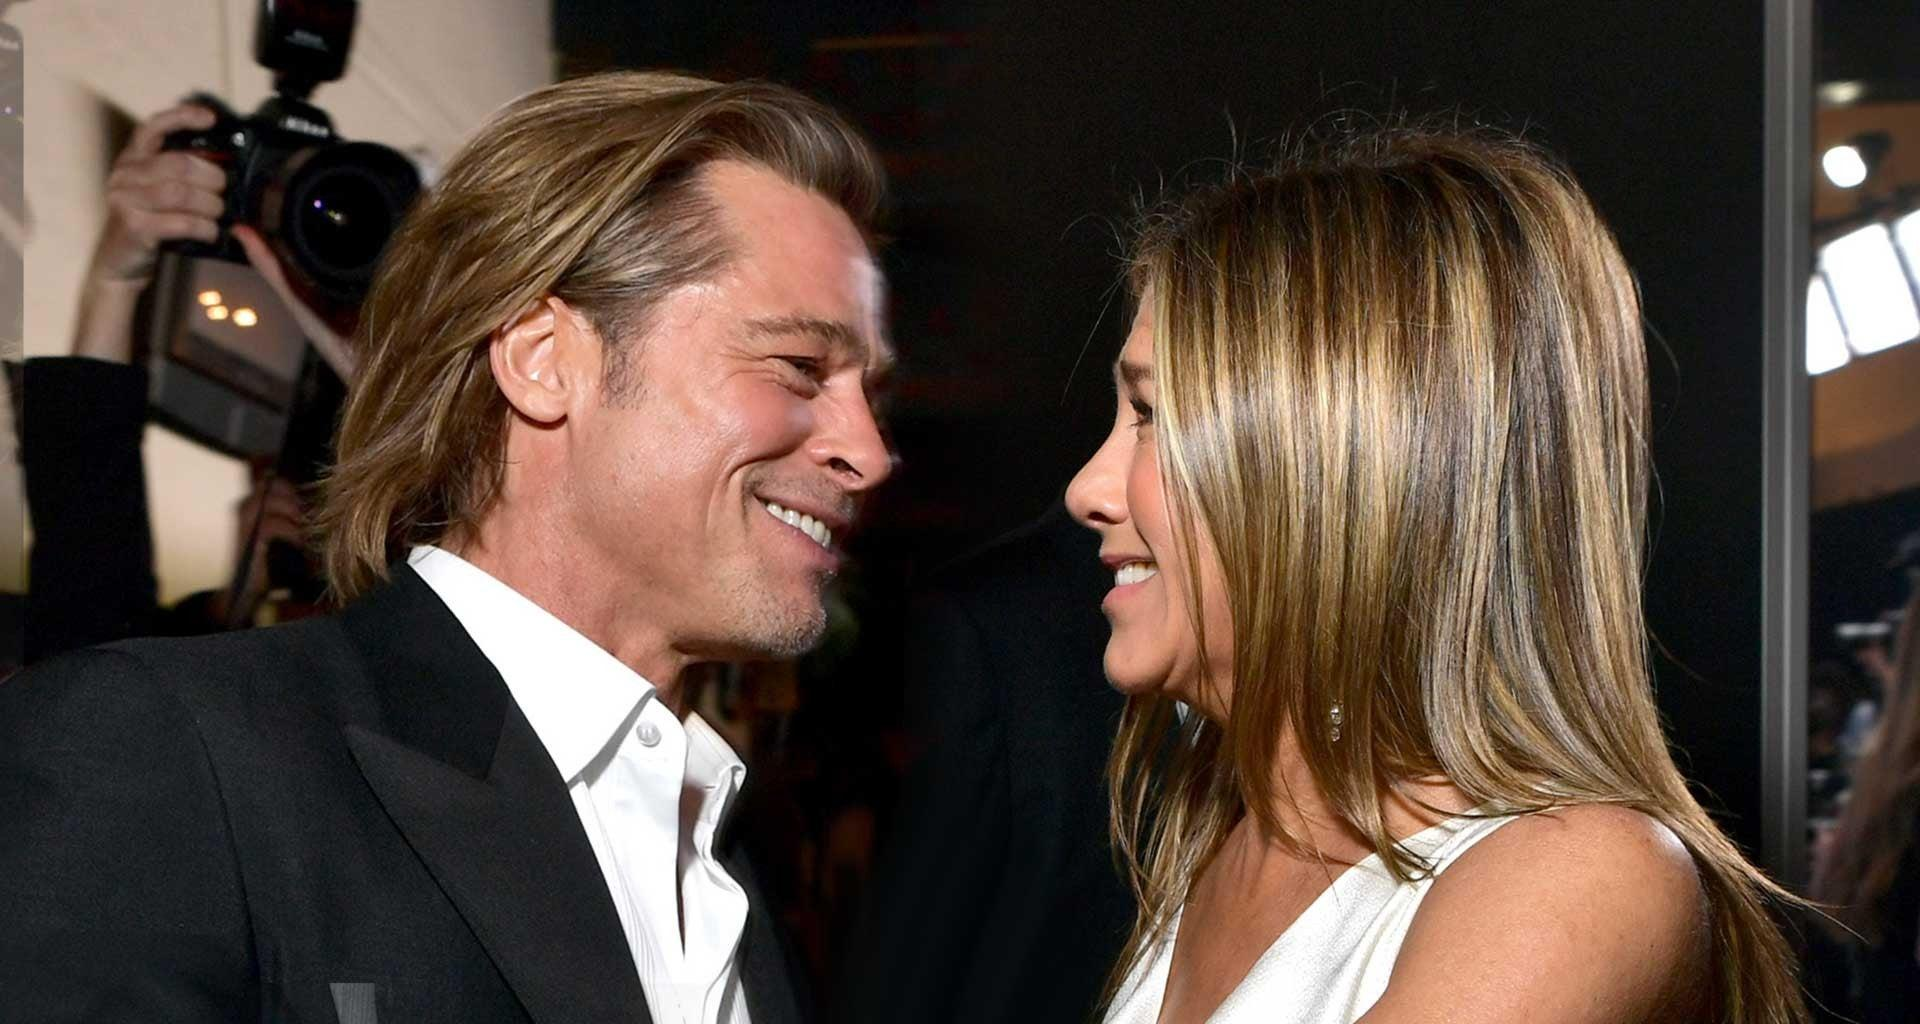 Jennifer Aniston Says She And Ex-Husband Brad Pitt Are 'Friends' And Gushes Over Working Together On New Project!